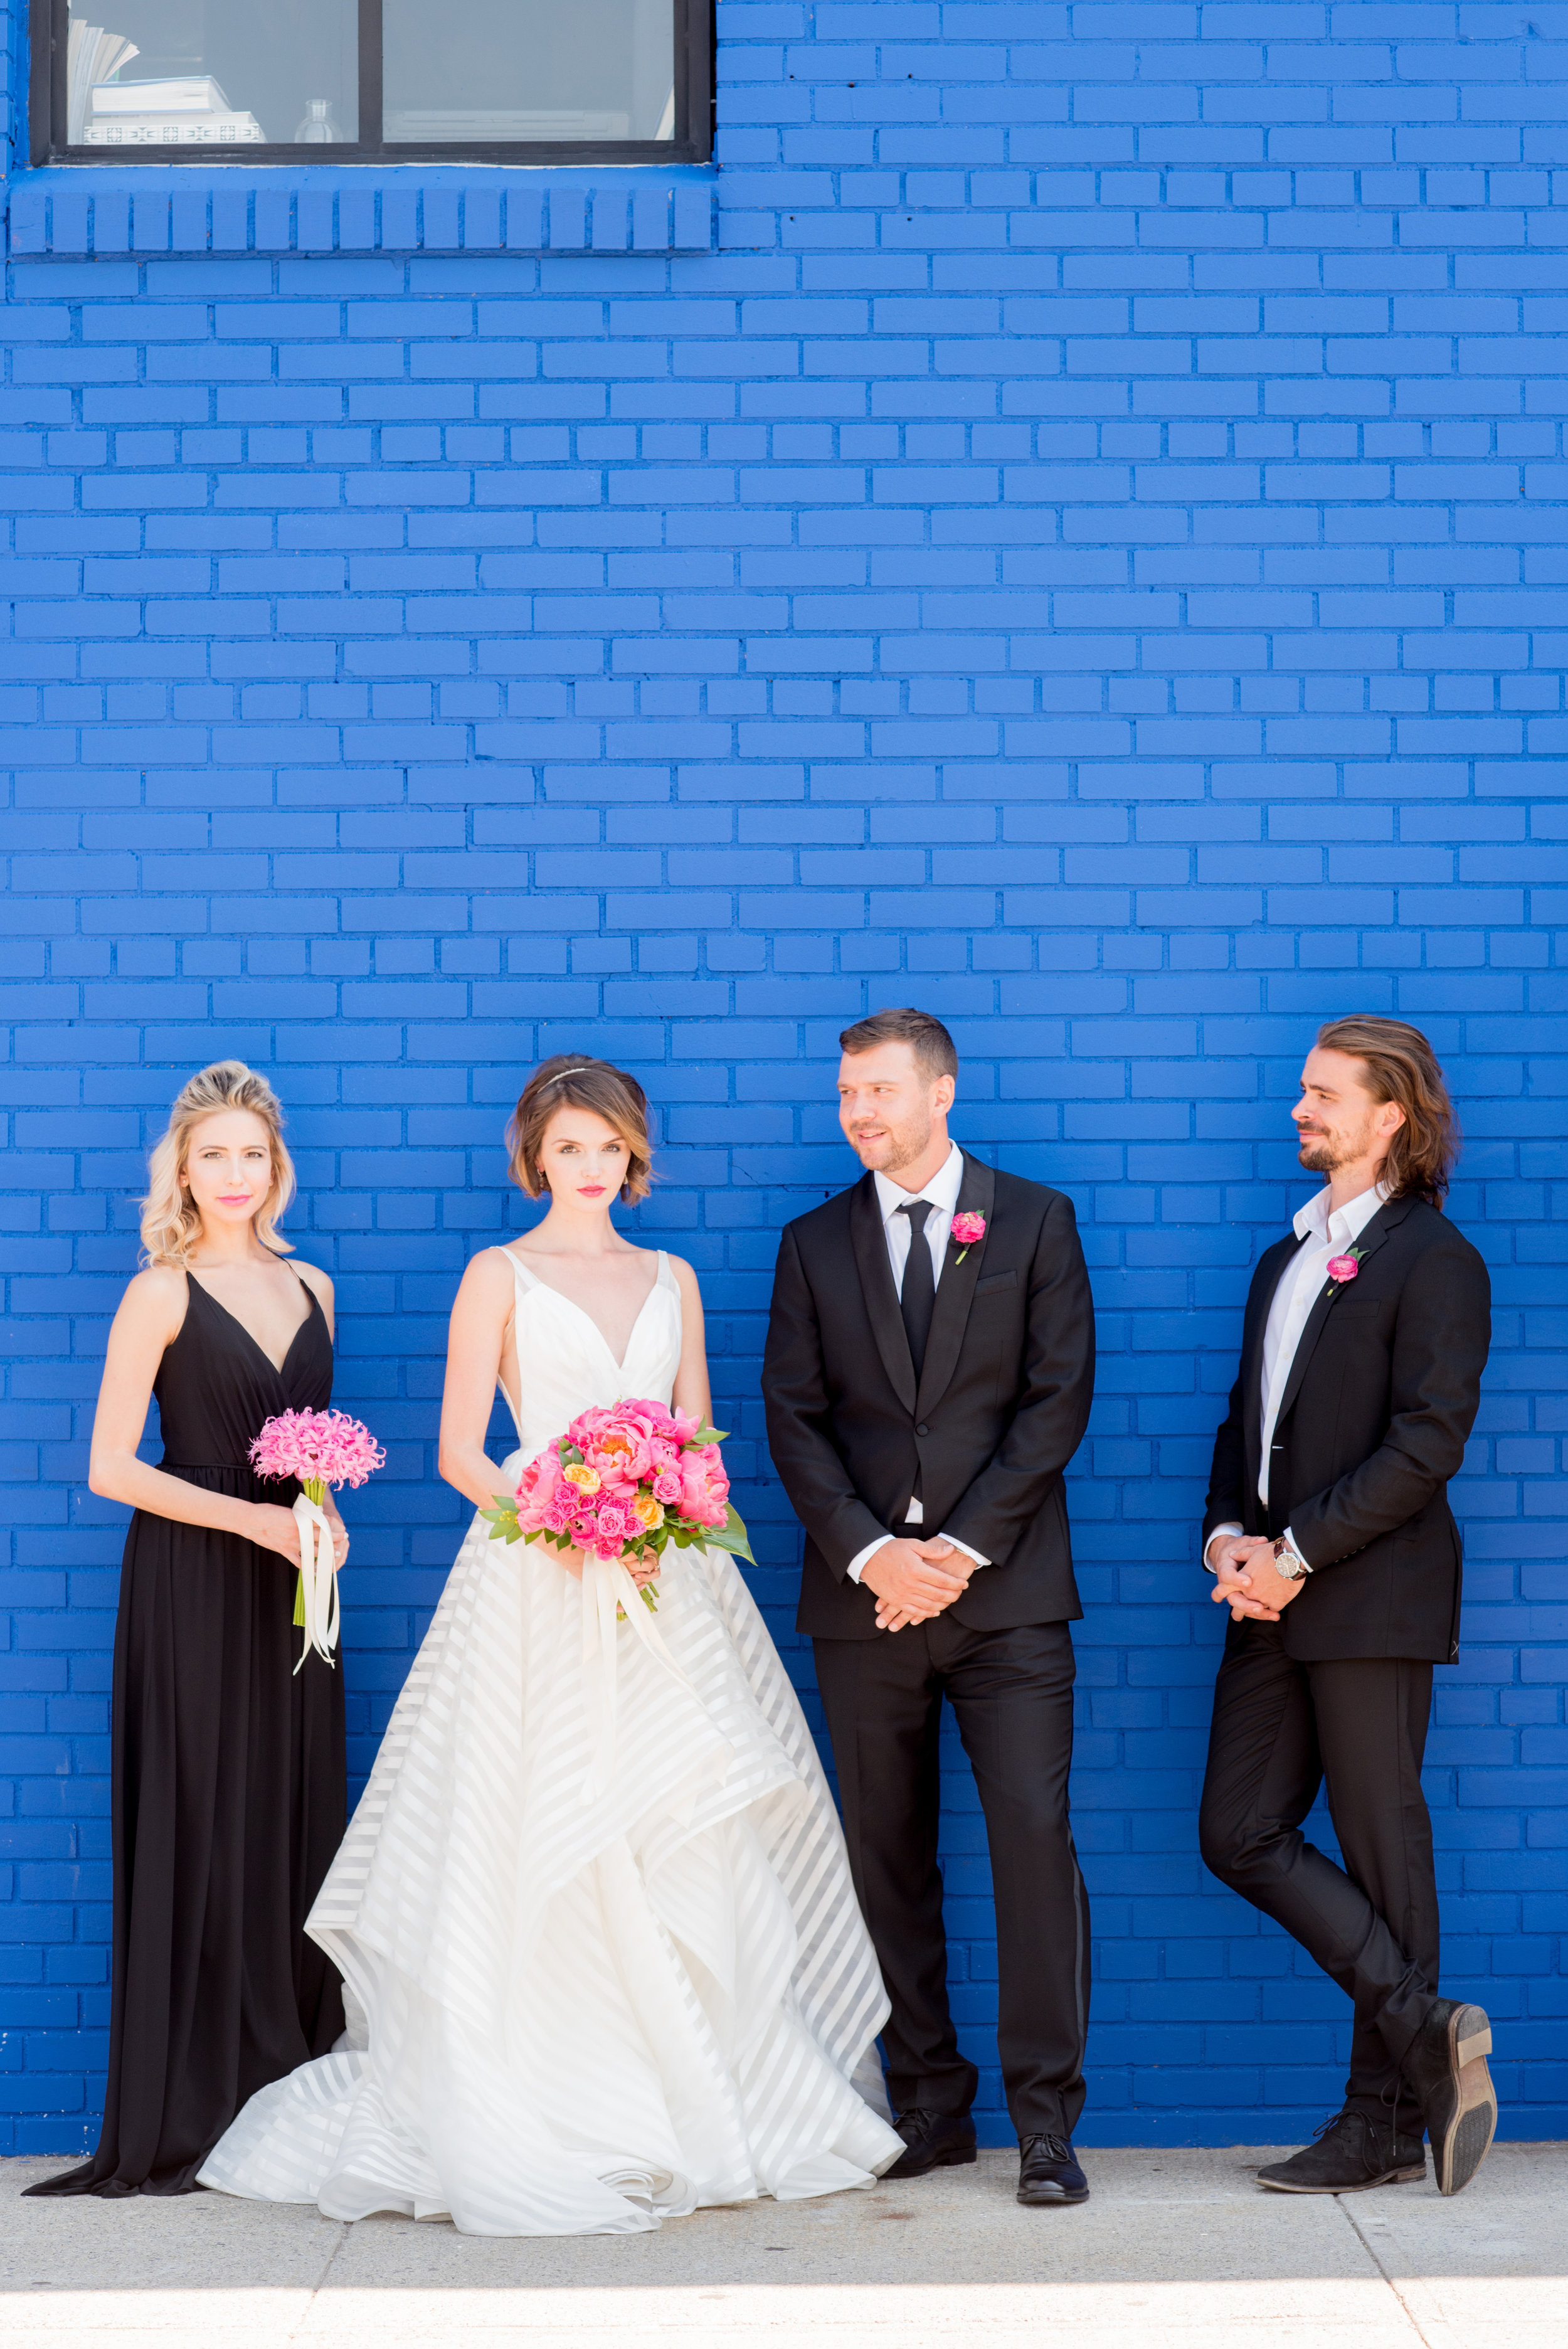 mikkelpaige-dobbin_st_brooklyn-wedding_photos-088.jpg